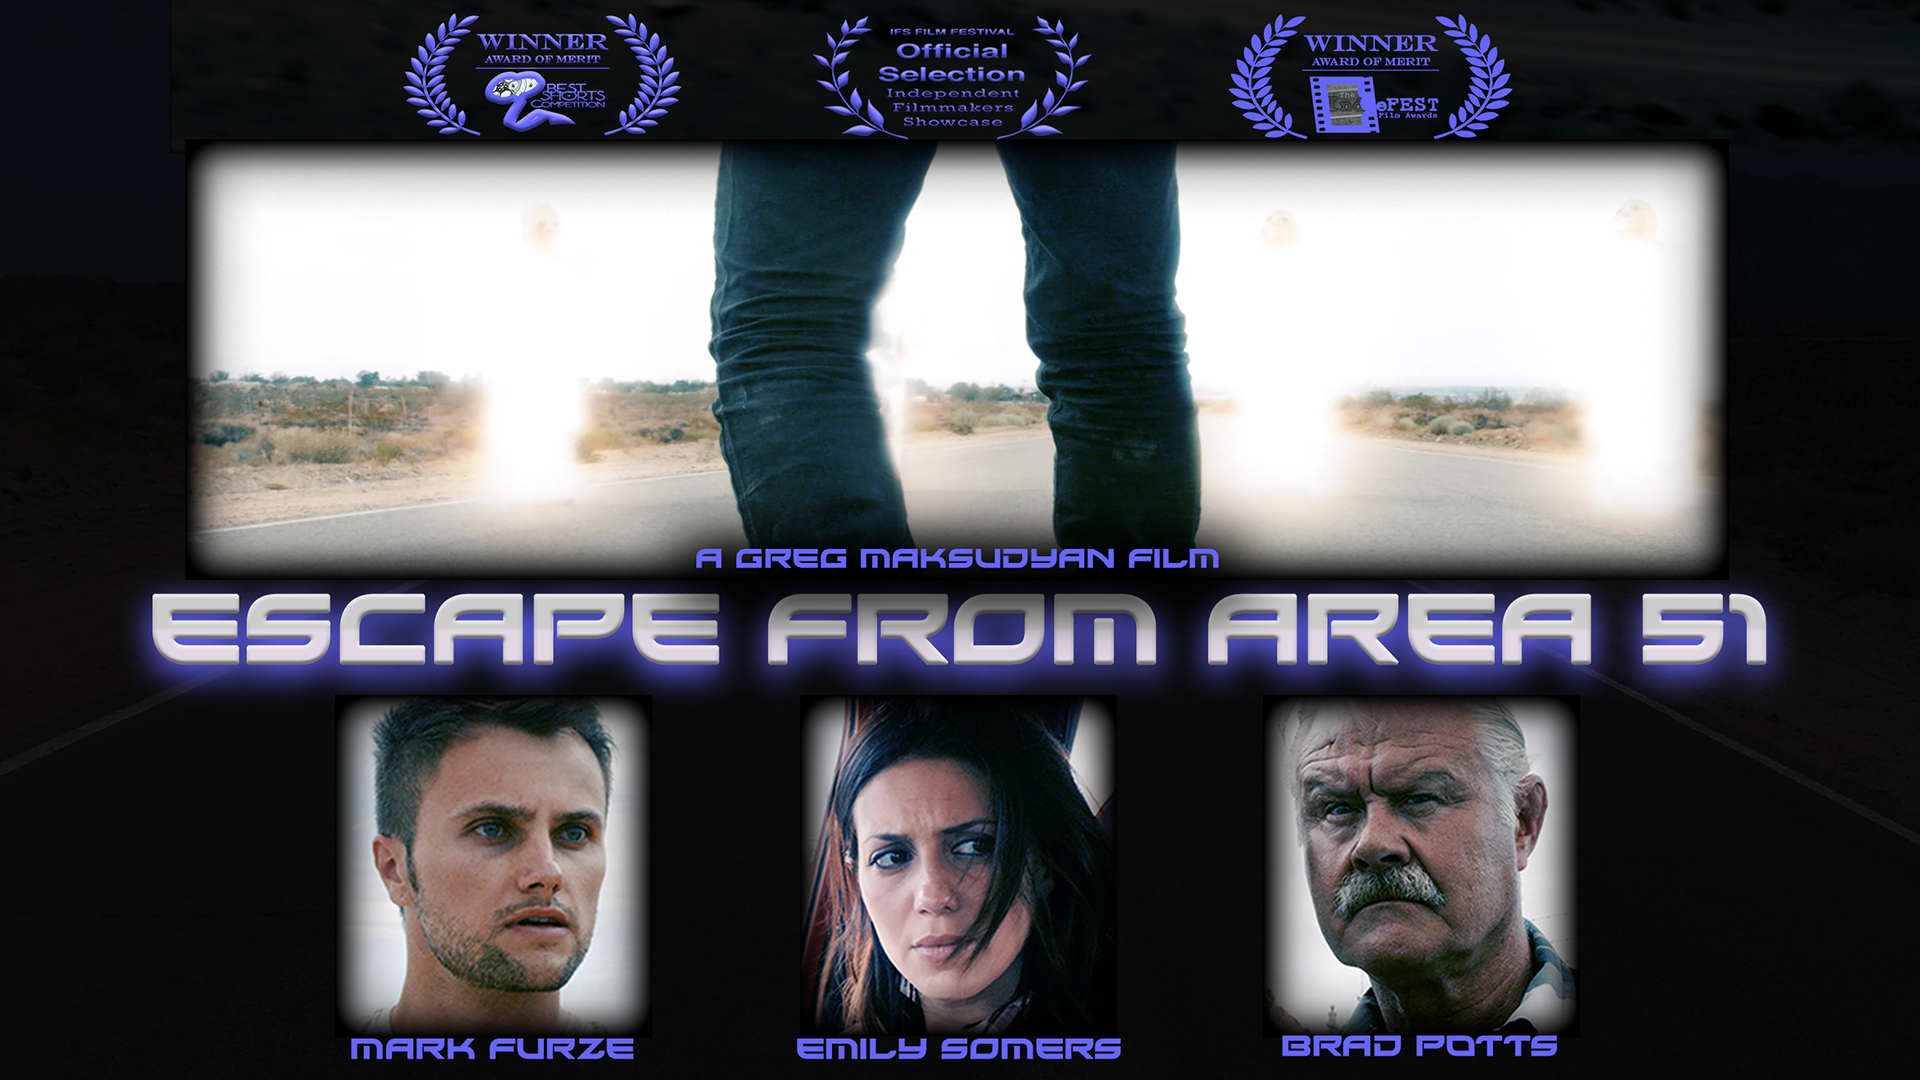 Escape from Area 51 (Short Film)